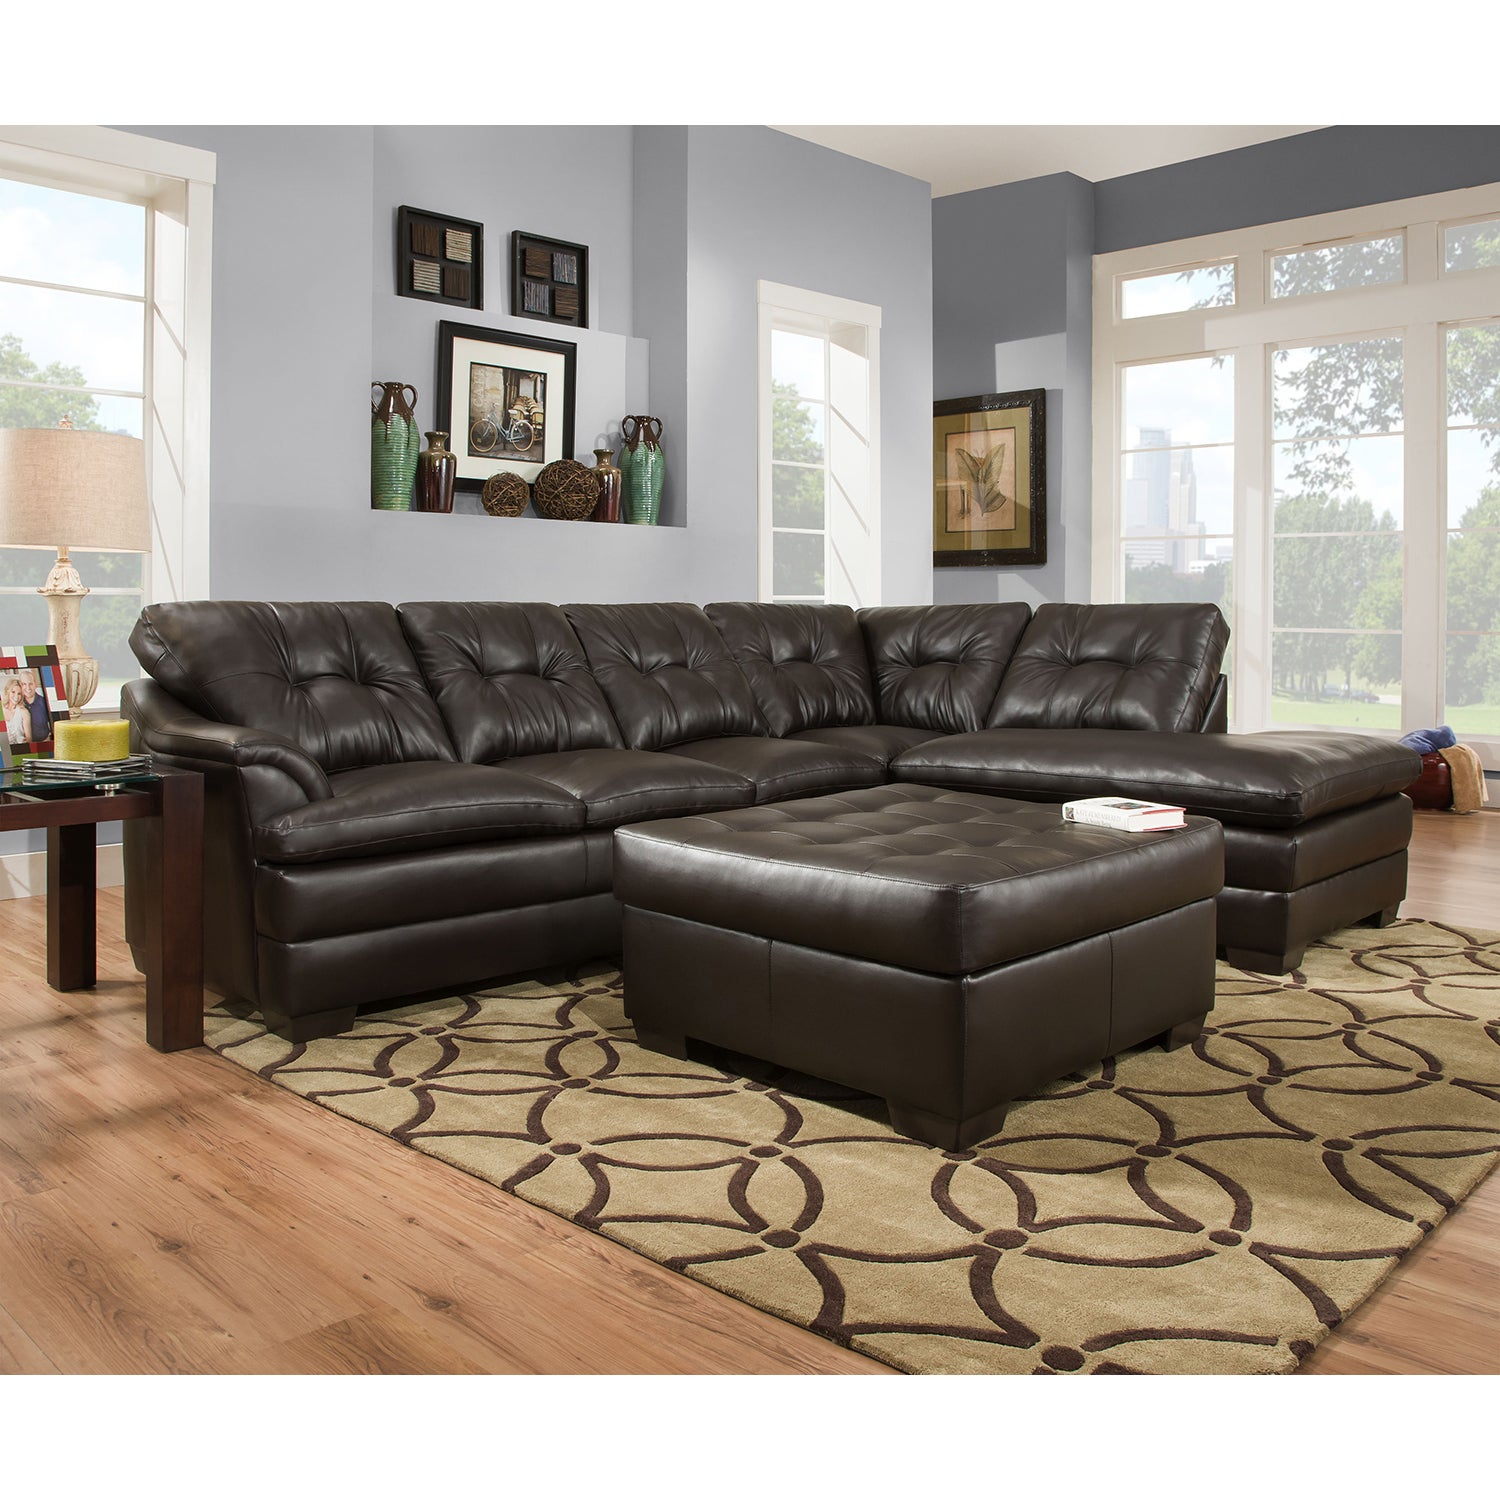 simmons living room set. Simmons Upholstery Apollo Espresso Sectional and Ottoman  living room set Furniture Compare Prices at Nextag